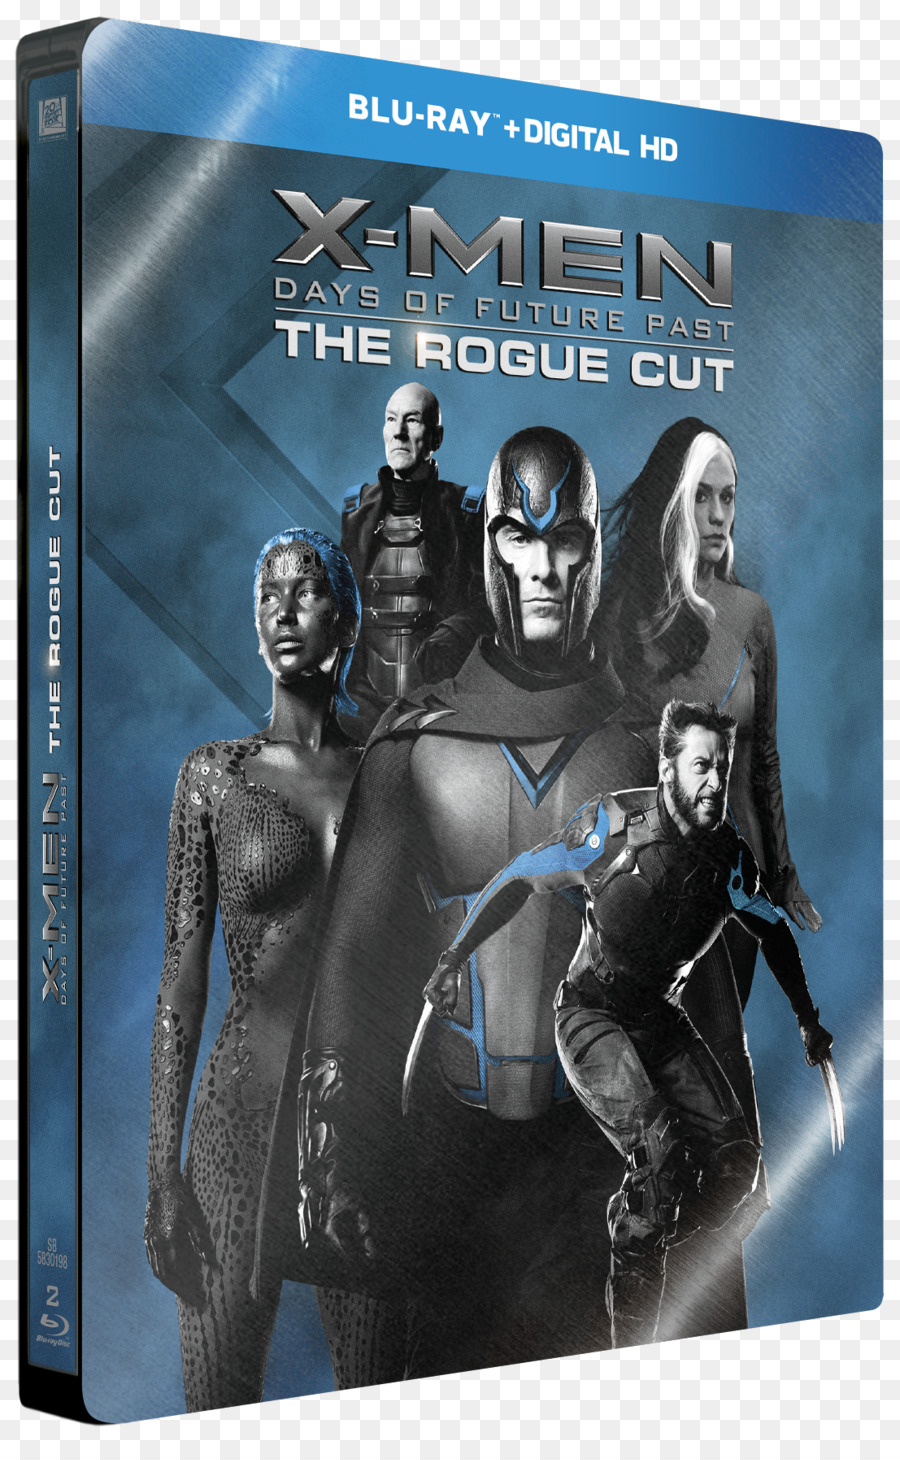 rogue x-men: days of future past film zavvi - others png download